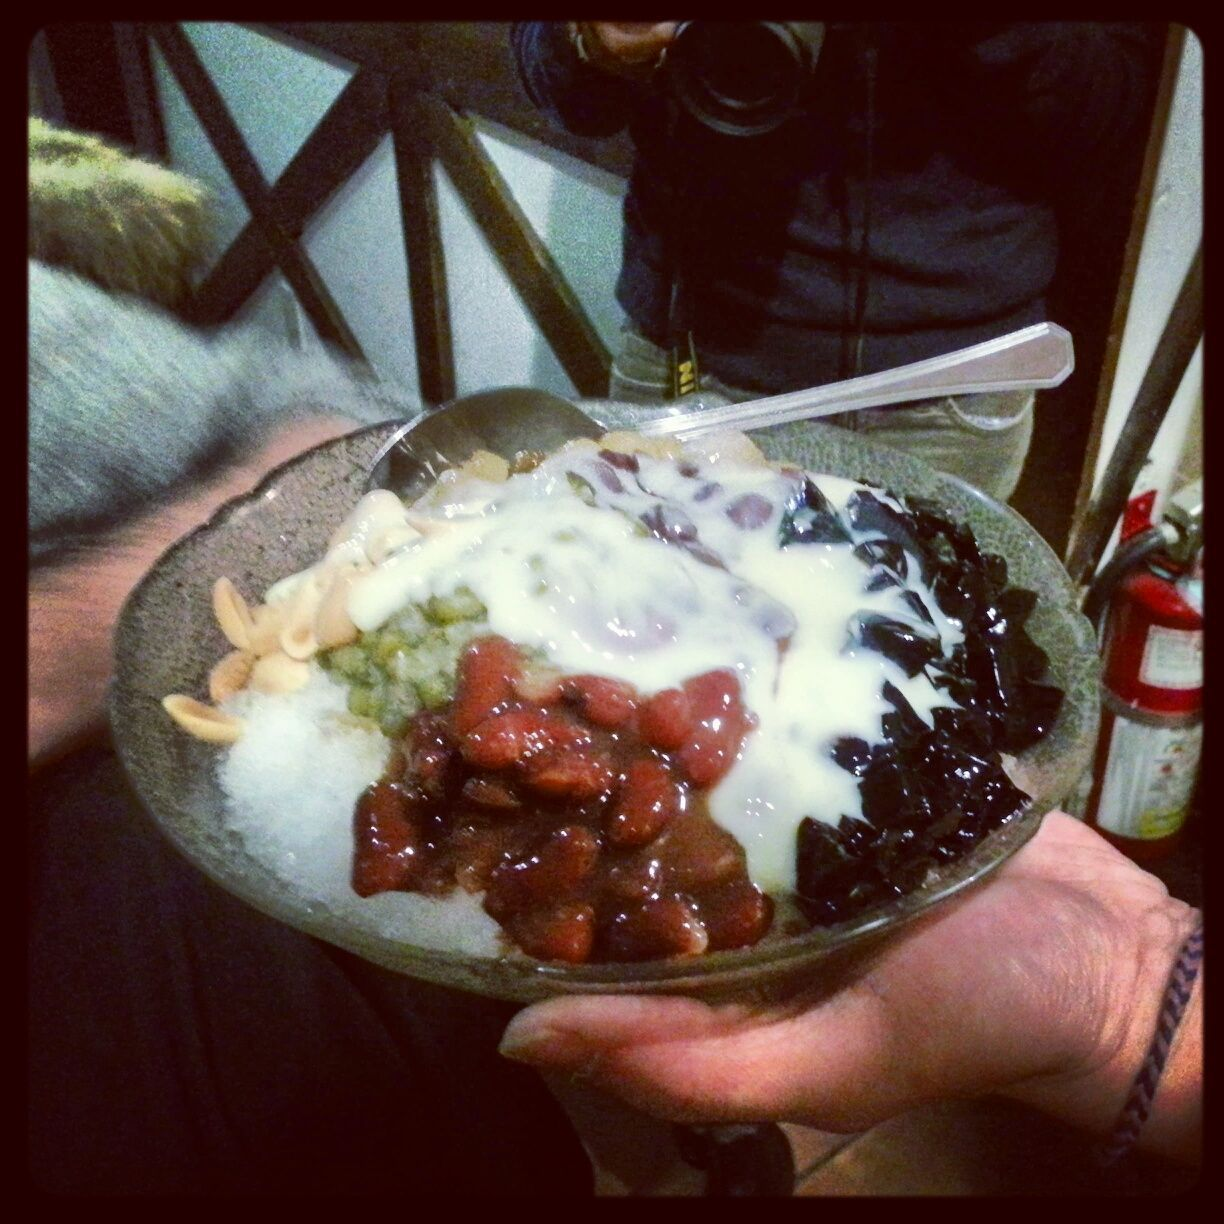 Shaved ice from Leisure Tea